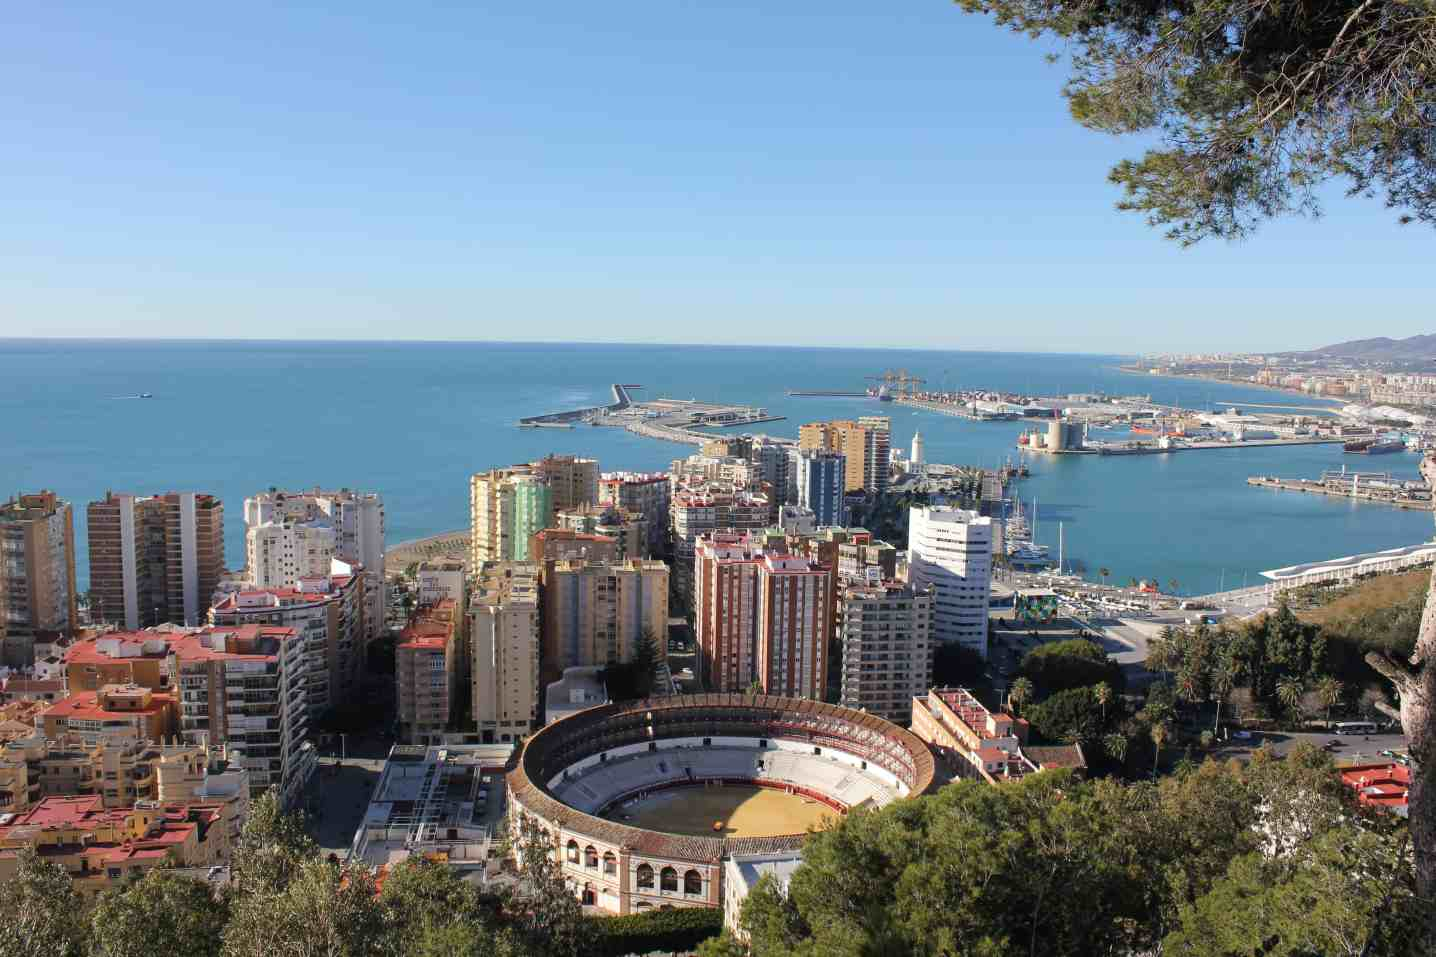 things to do in malaga, malaga facts, where to stay in malaga, free things to do in malaga, malaga airport transfer, Gibralfaro